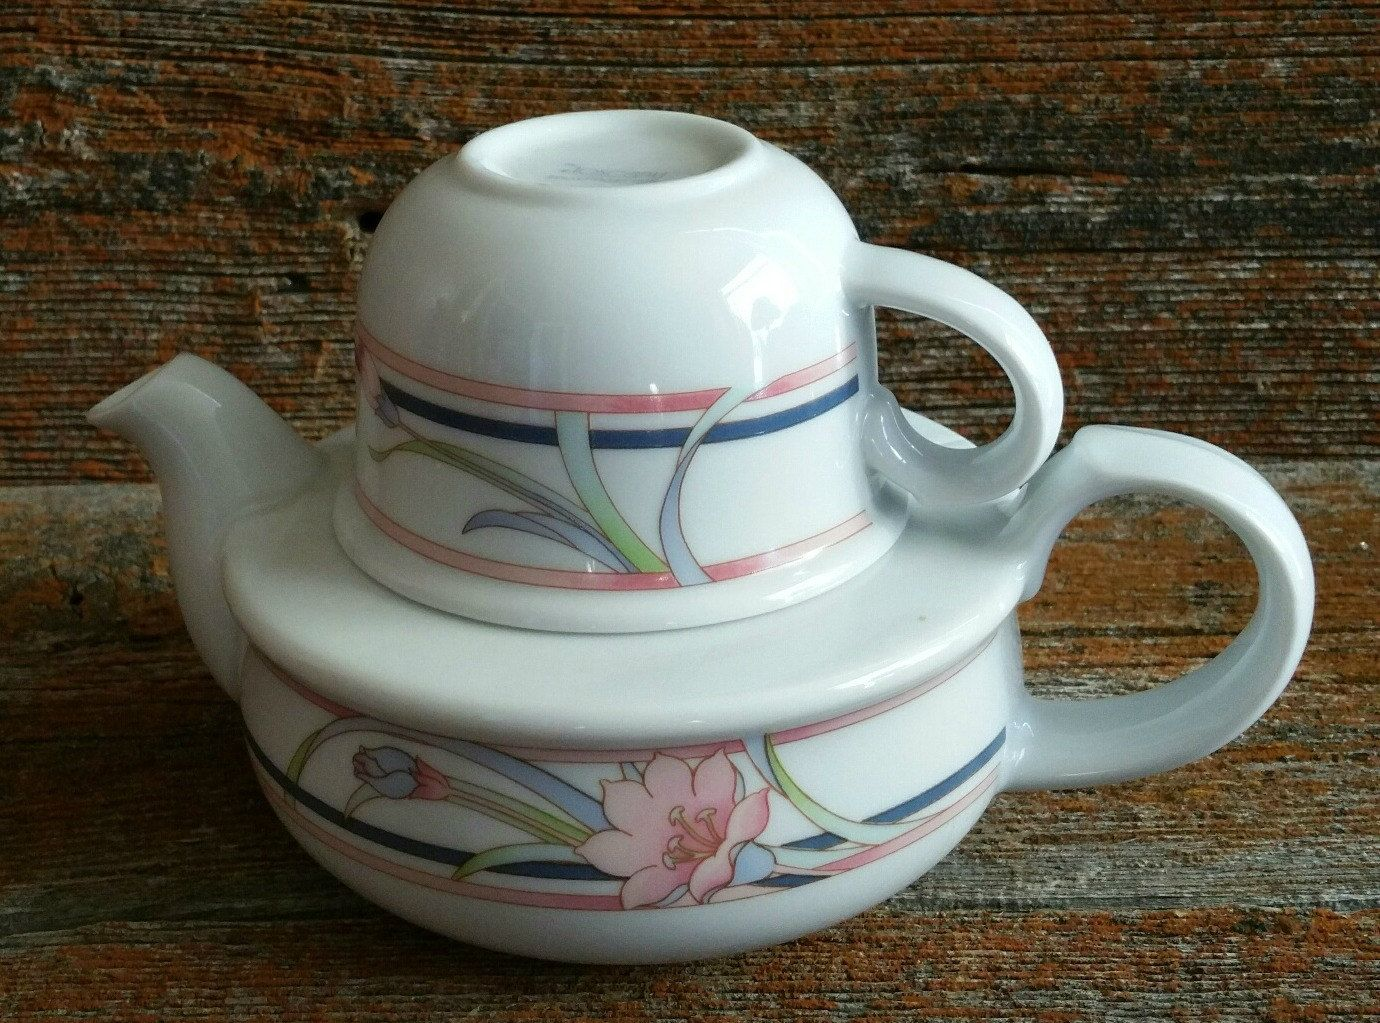 Vintage Toscany Teapot For One Ceramic Teapot And Cup